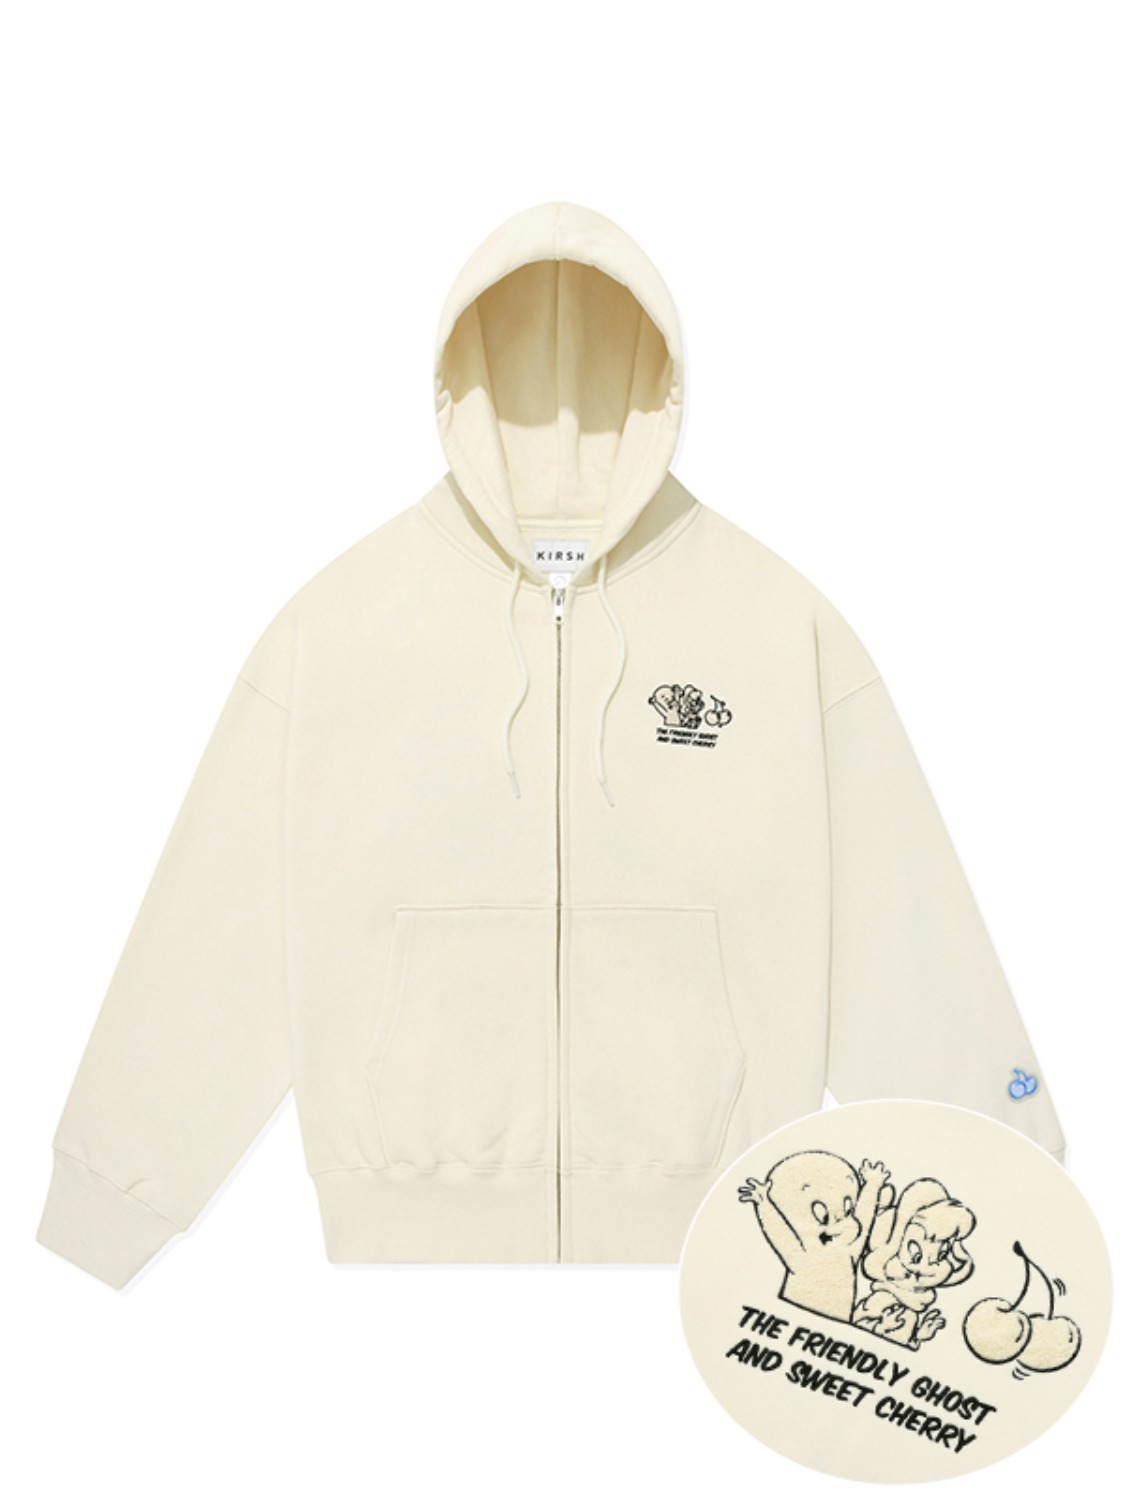 CASPER GRAPHIC HOODIE ZIP UP [IVORY]